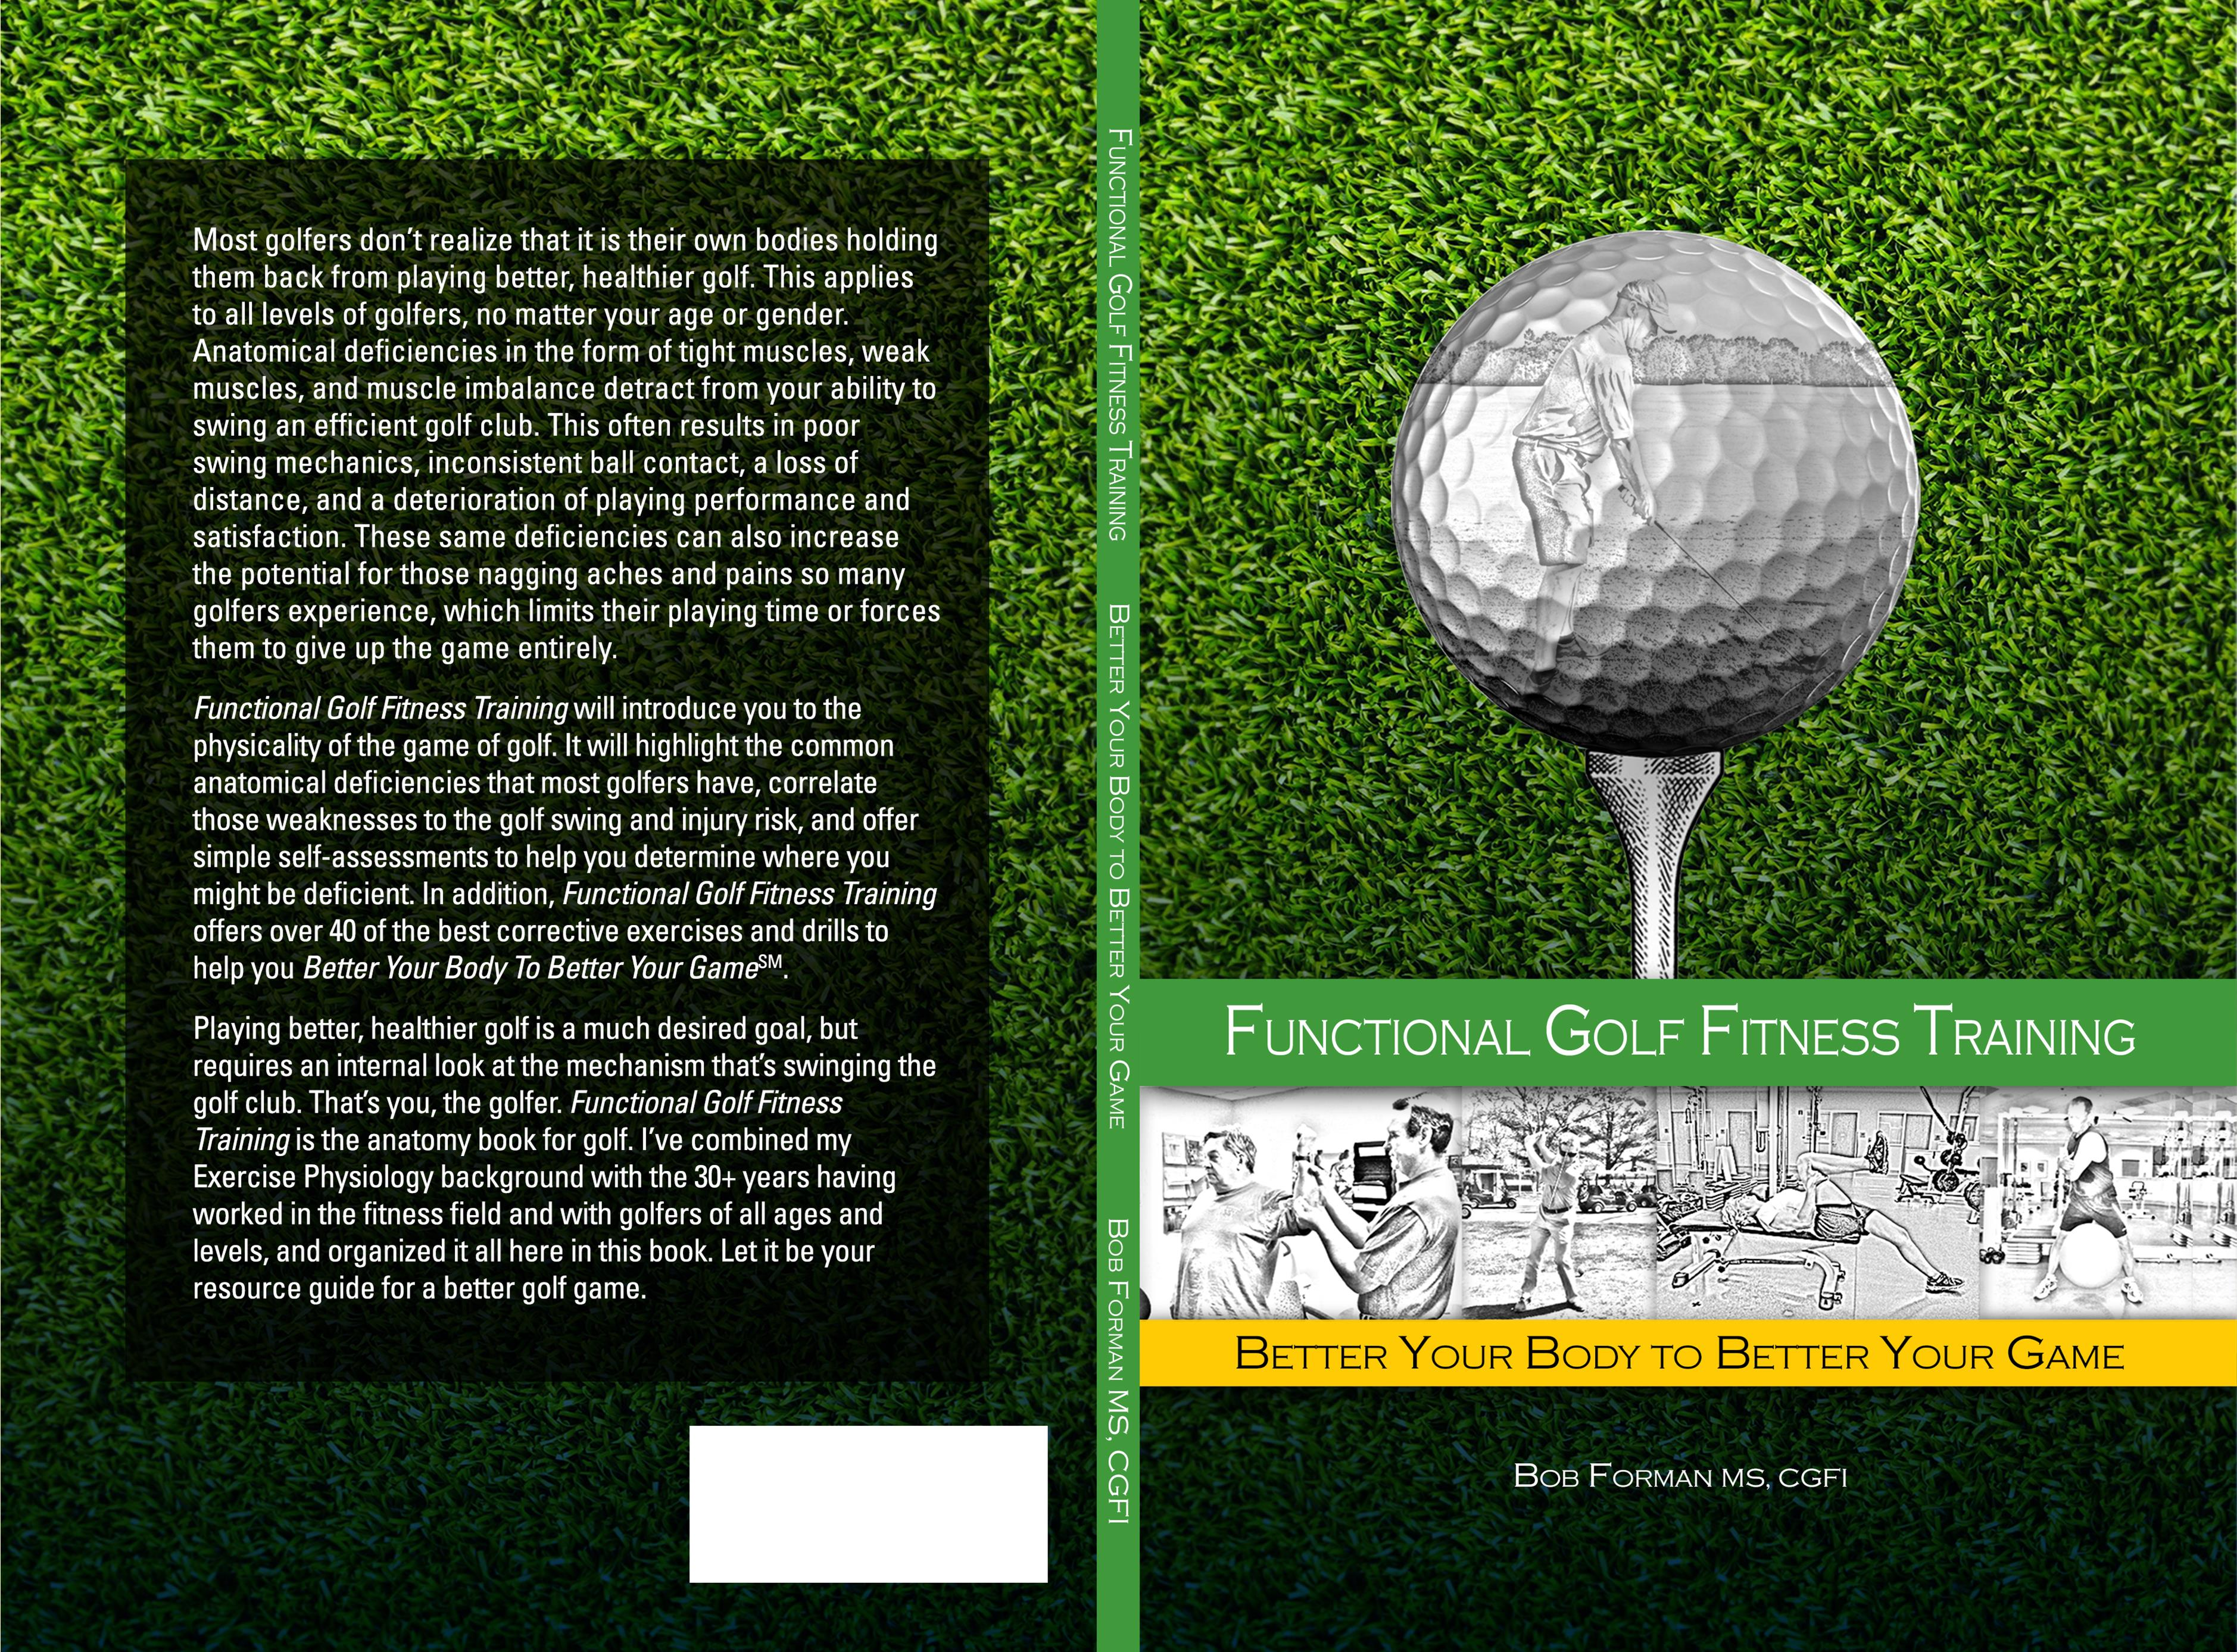 Functional Golf Fitness Training cover image